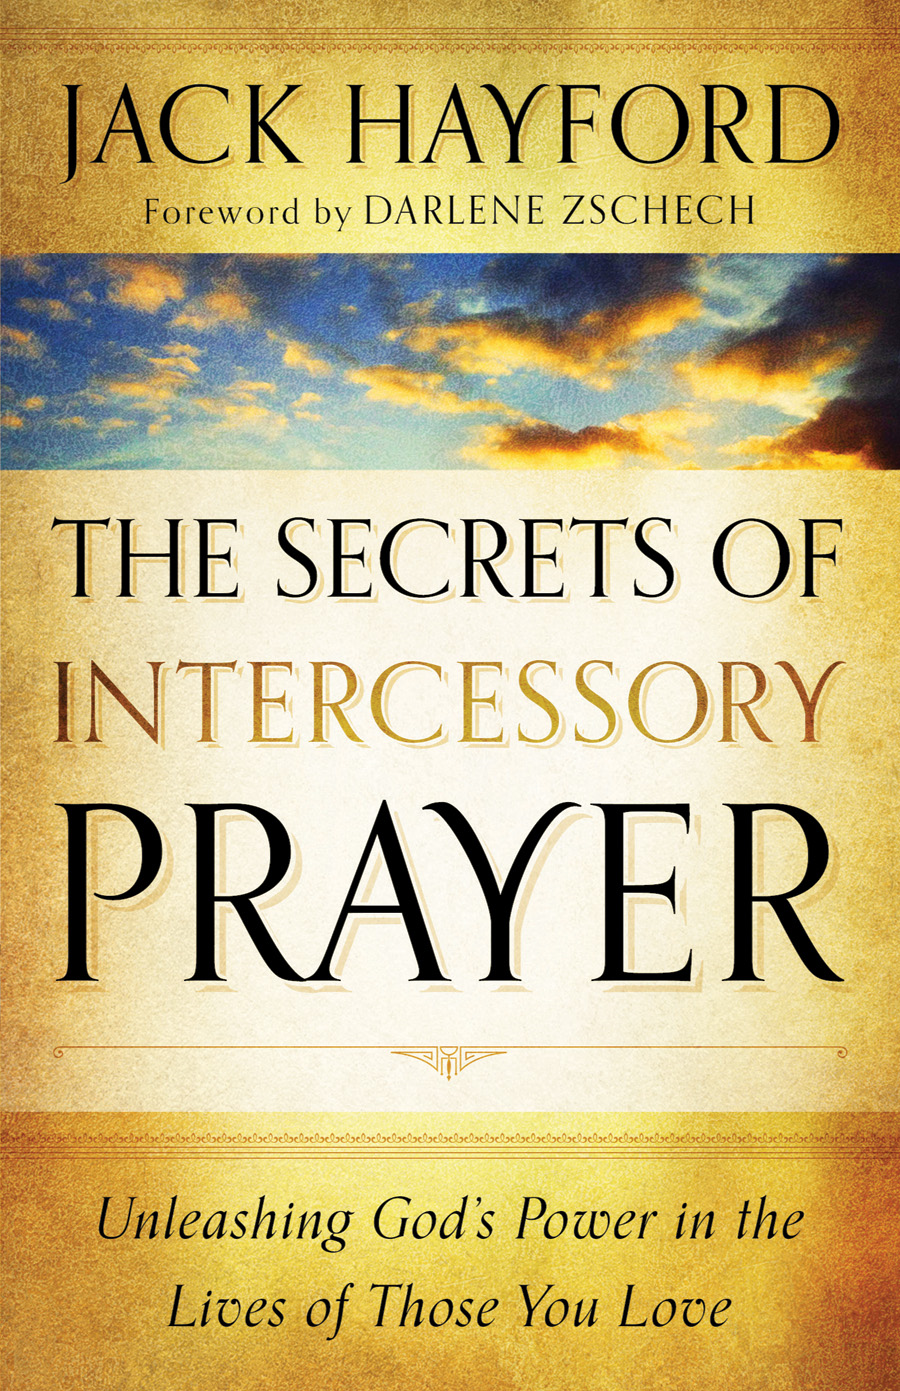 Secrets of Intercessory Prayer, The